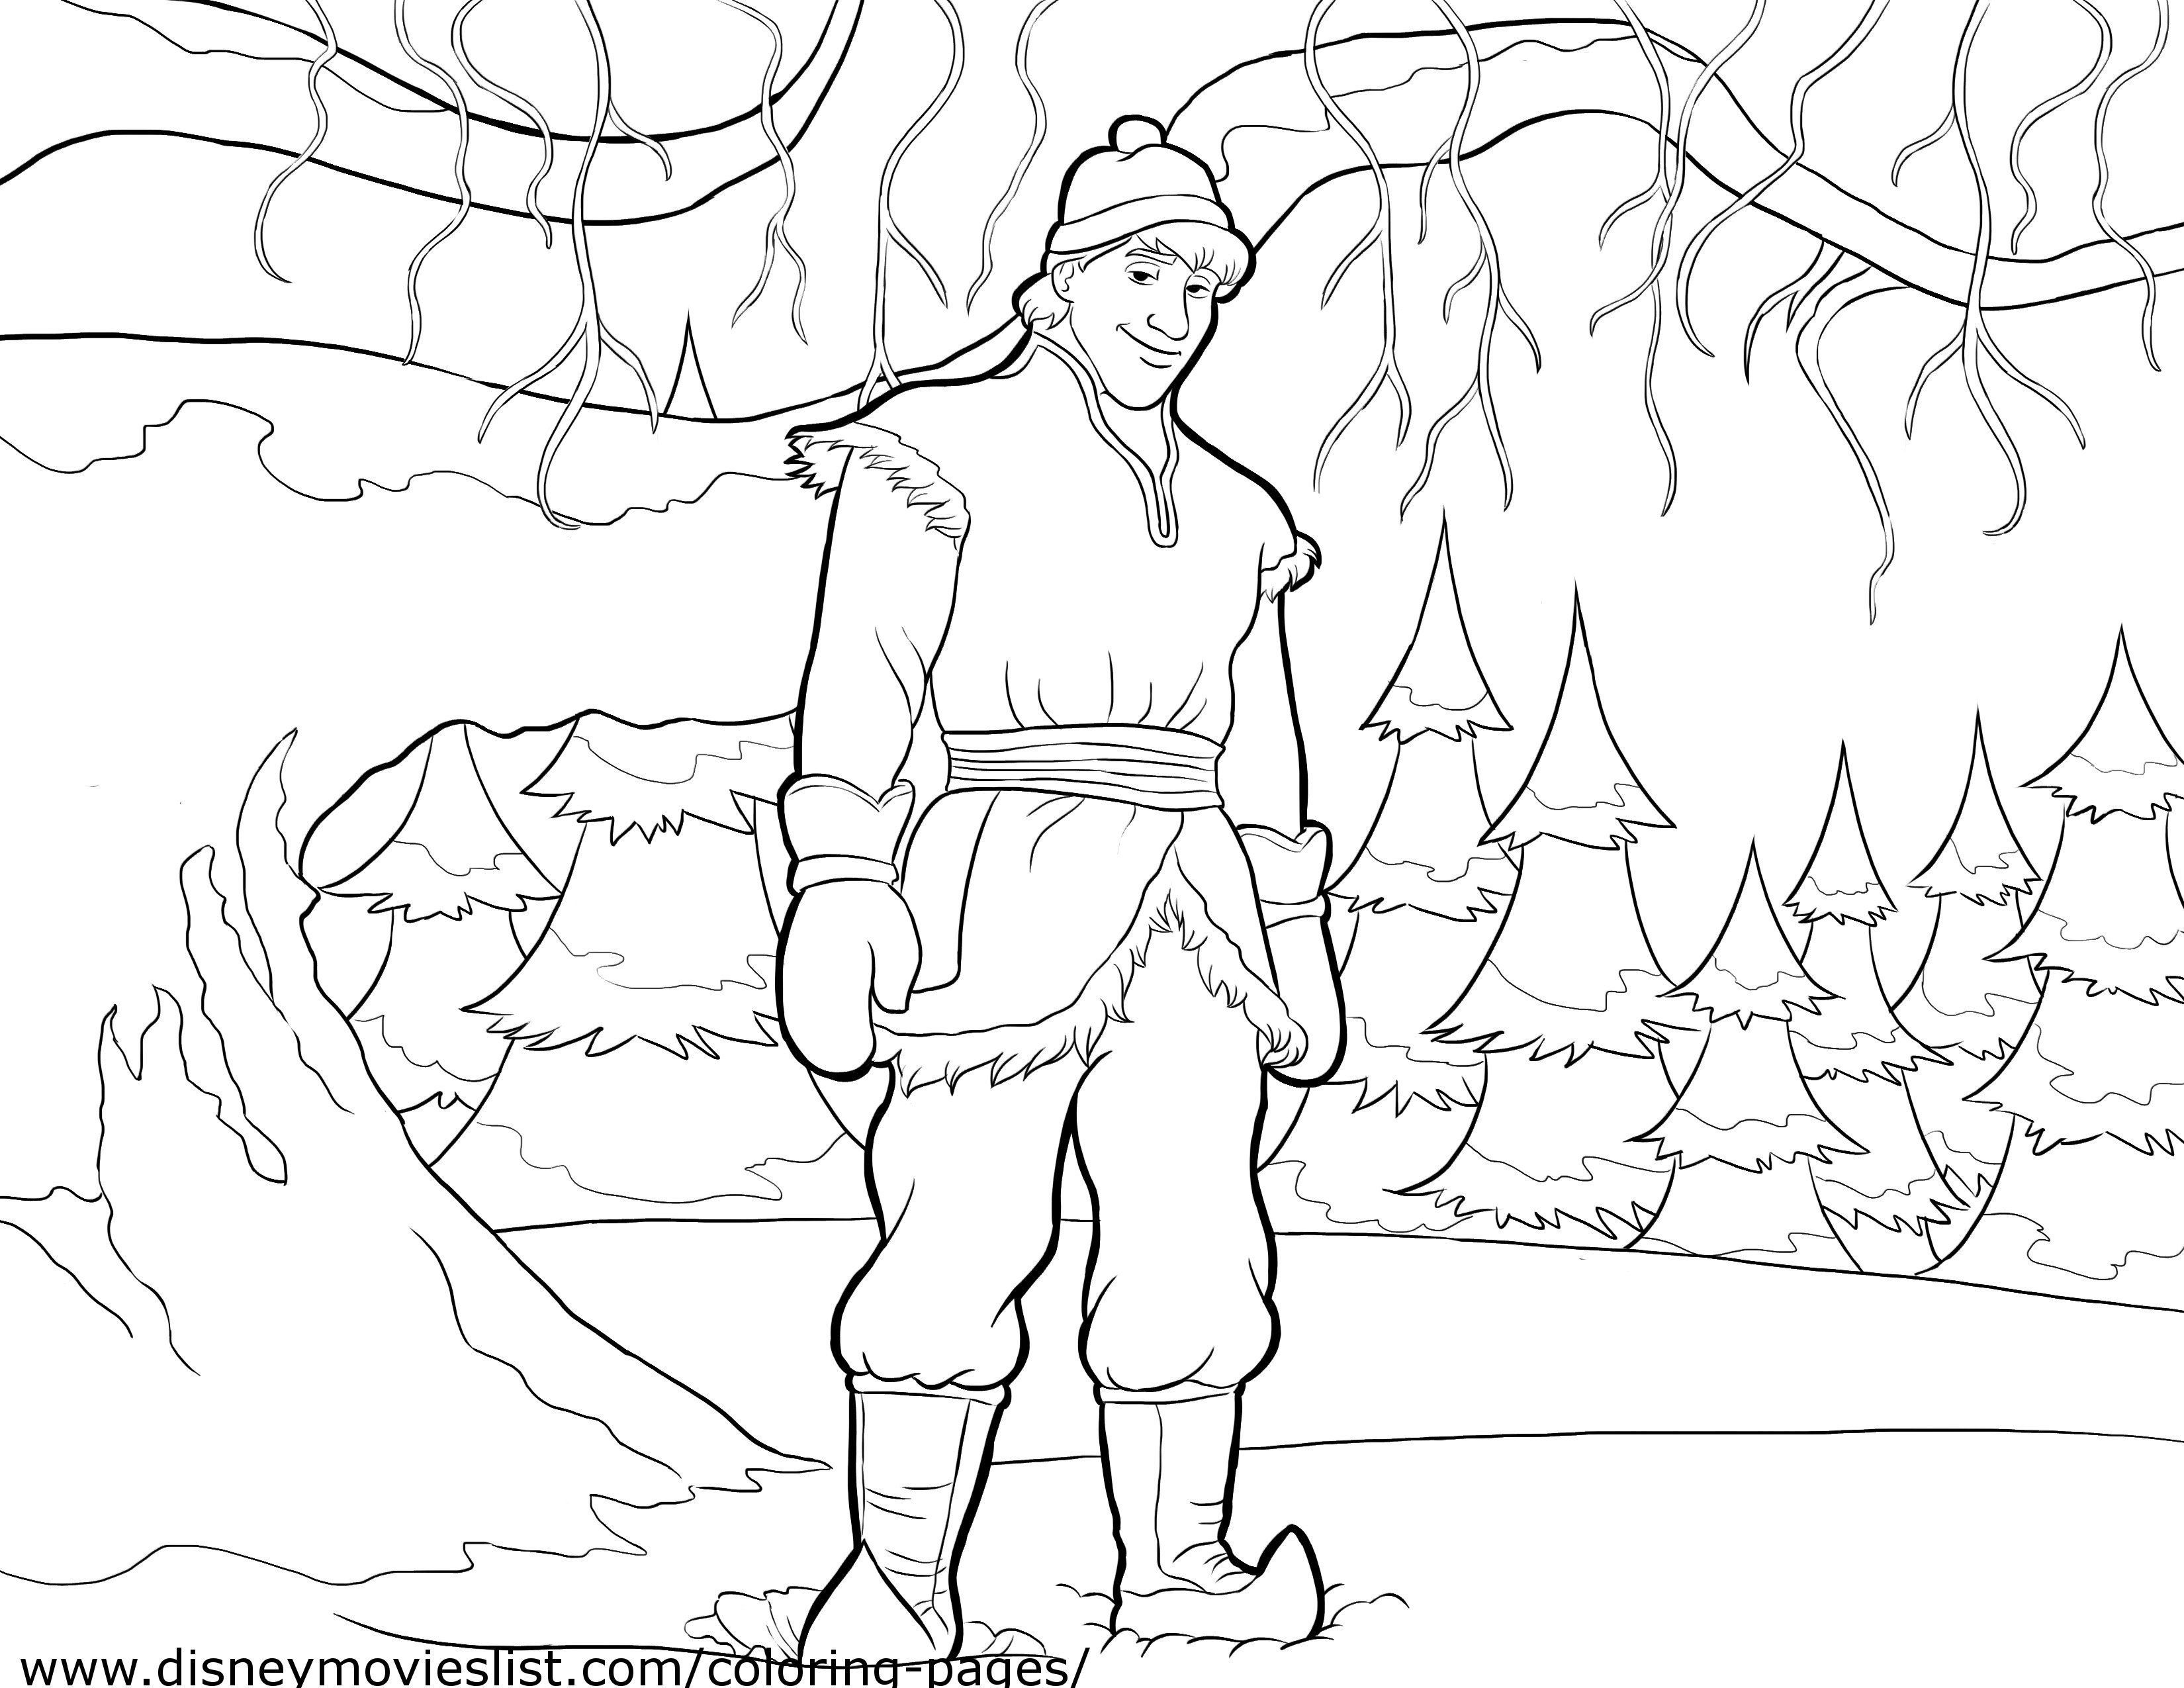 Coloring pages for frozen printable -  Coloring Pages Sheet Free Disney Printable Frozen Download